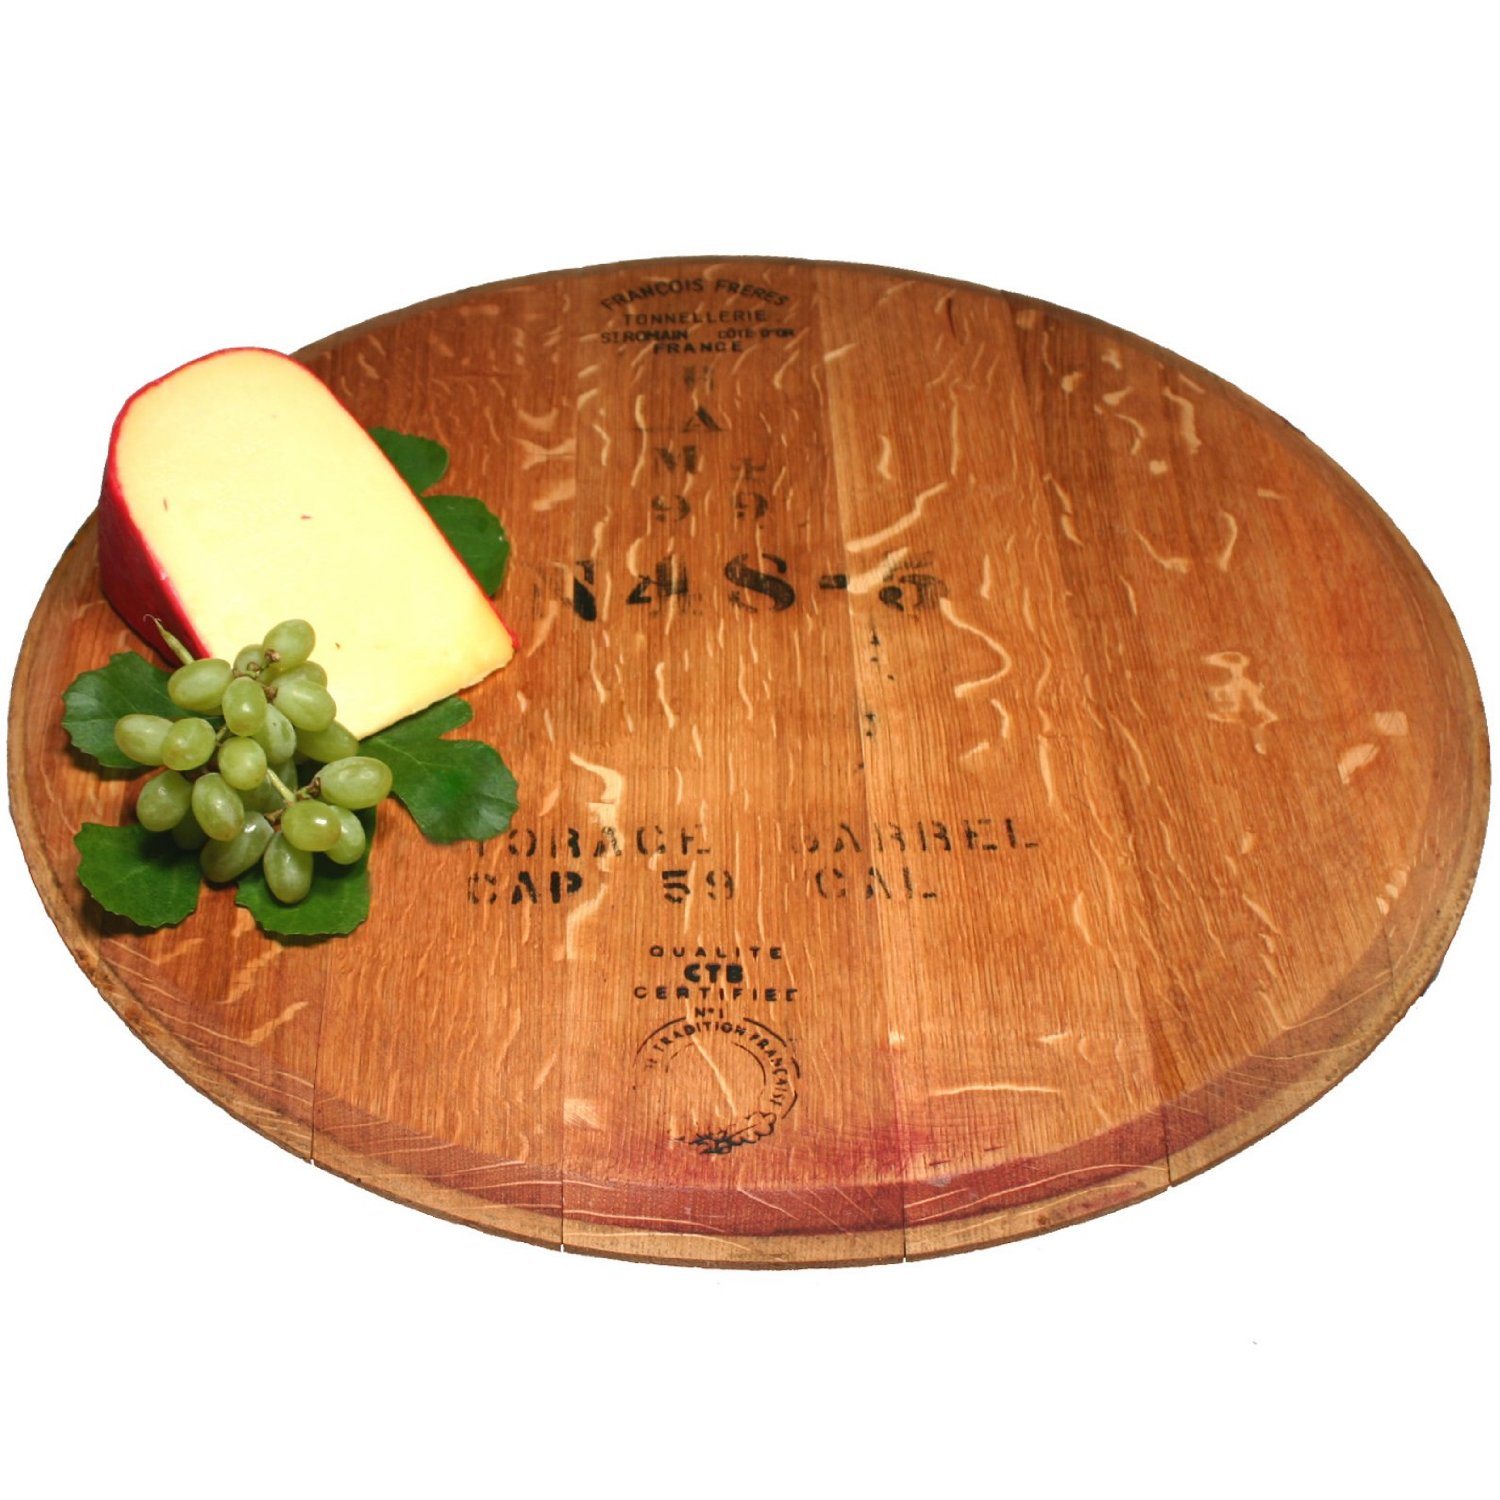 Comfy wine barrel lazy susan for furniture accessories ideas with personalized wine barrel lazy susan